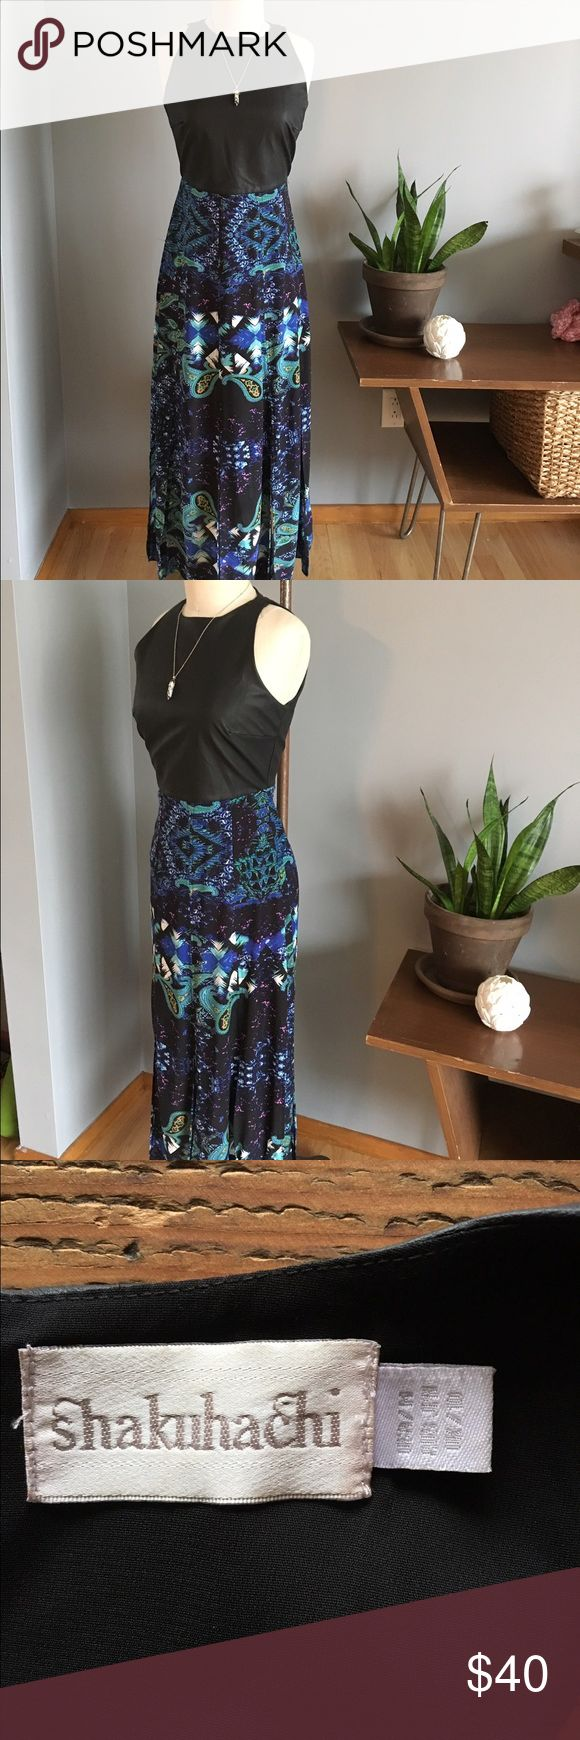 Shakuhachi Watercolor Maxi Dress Shakuhachi Maxi Dress size U.K. 10 / US M. Vegan leather bodice with sleek high neck, sleeveless and darted at bust. Watercolor patterned Maxi skirt, opens in multiple slits from thigh down for super breezy boho feel. Equally beautiful styled with a stacked heel or casual with a gladiator sandal. Shakuhachi Dresses Maxi